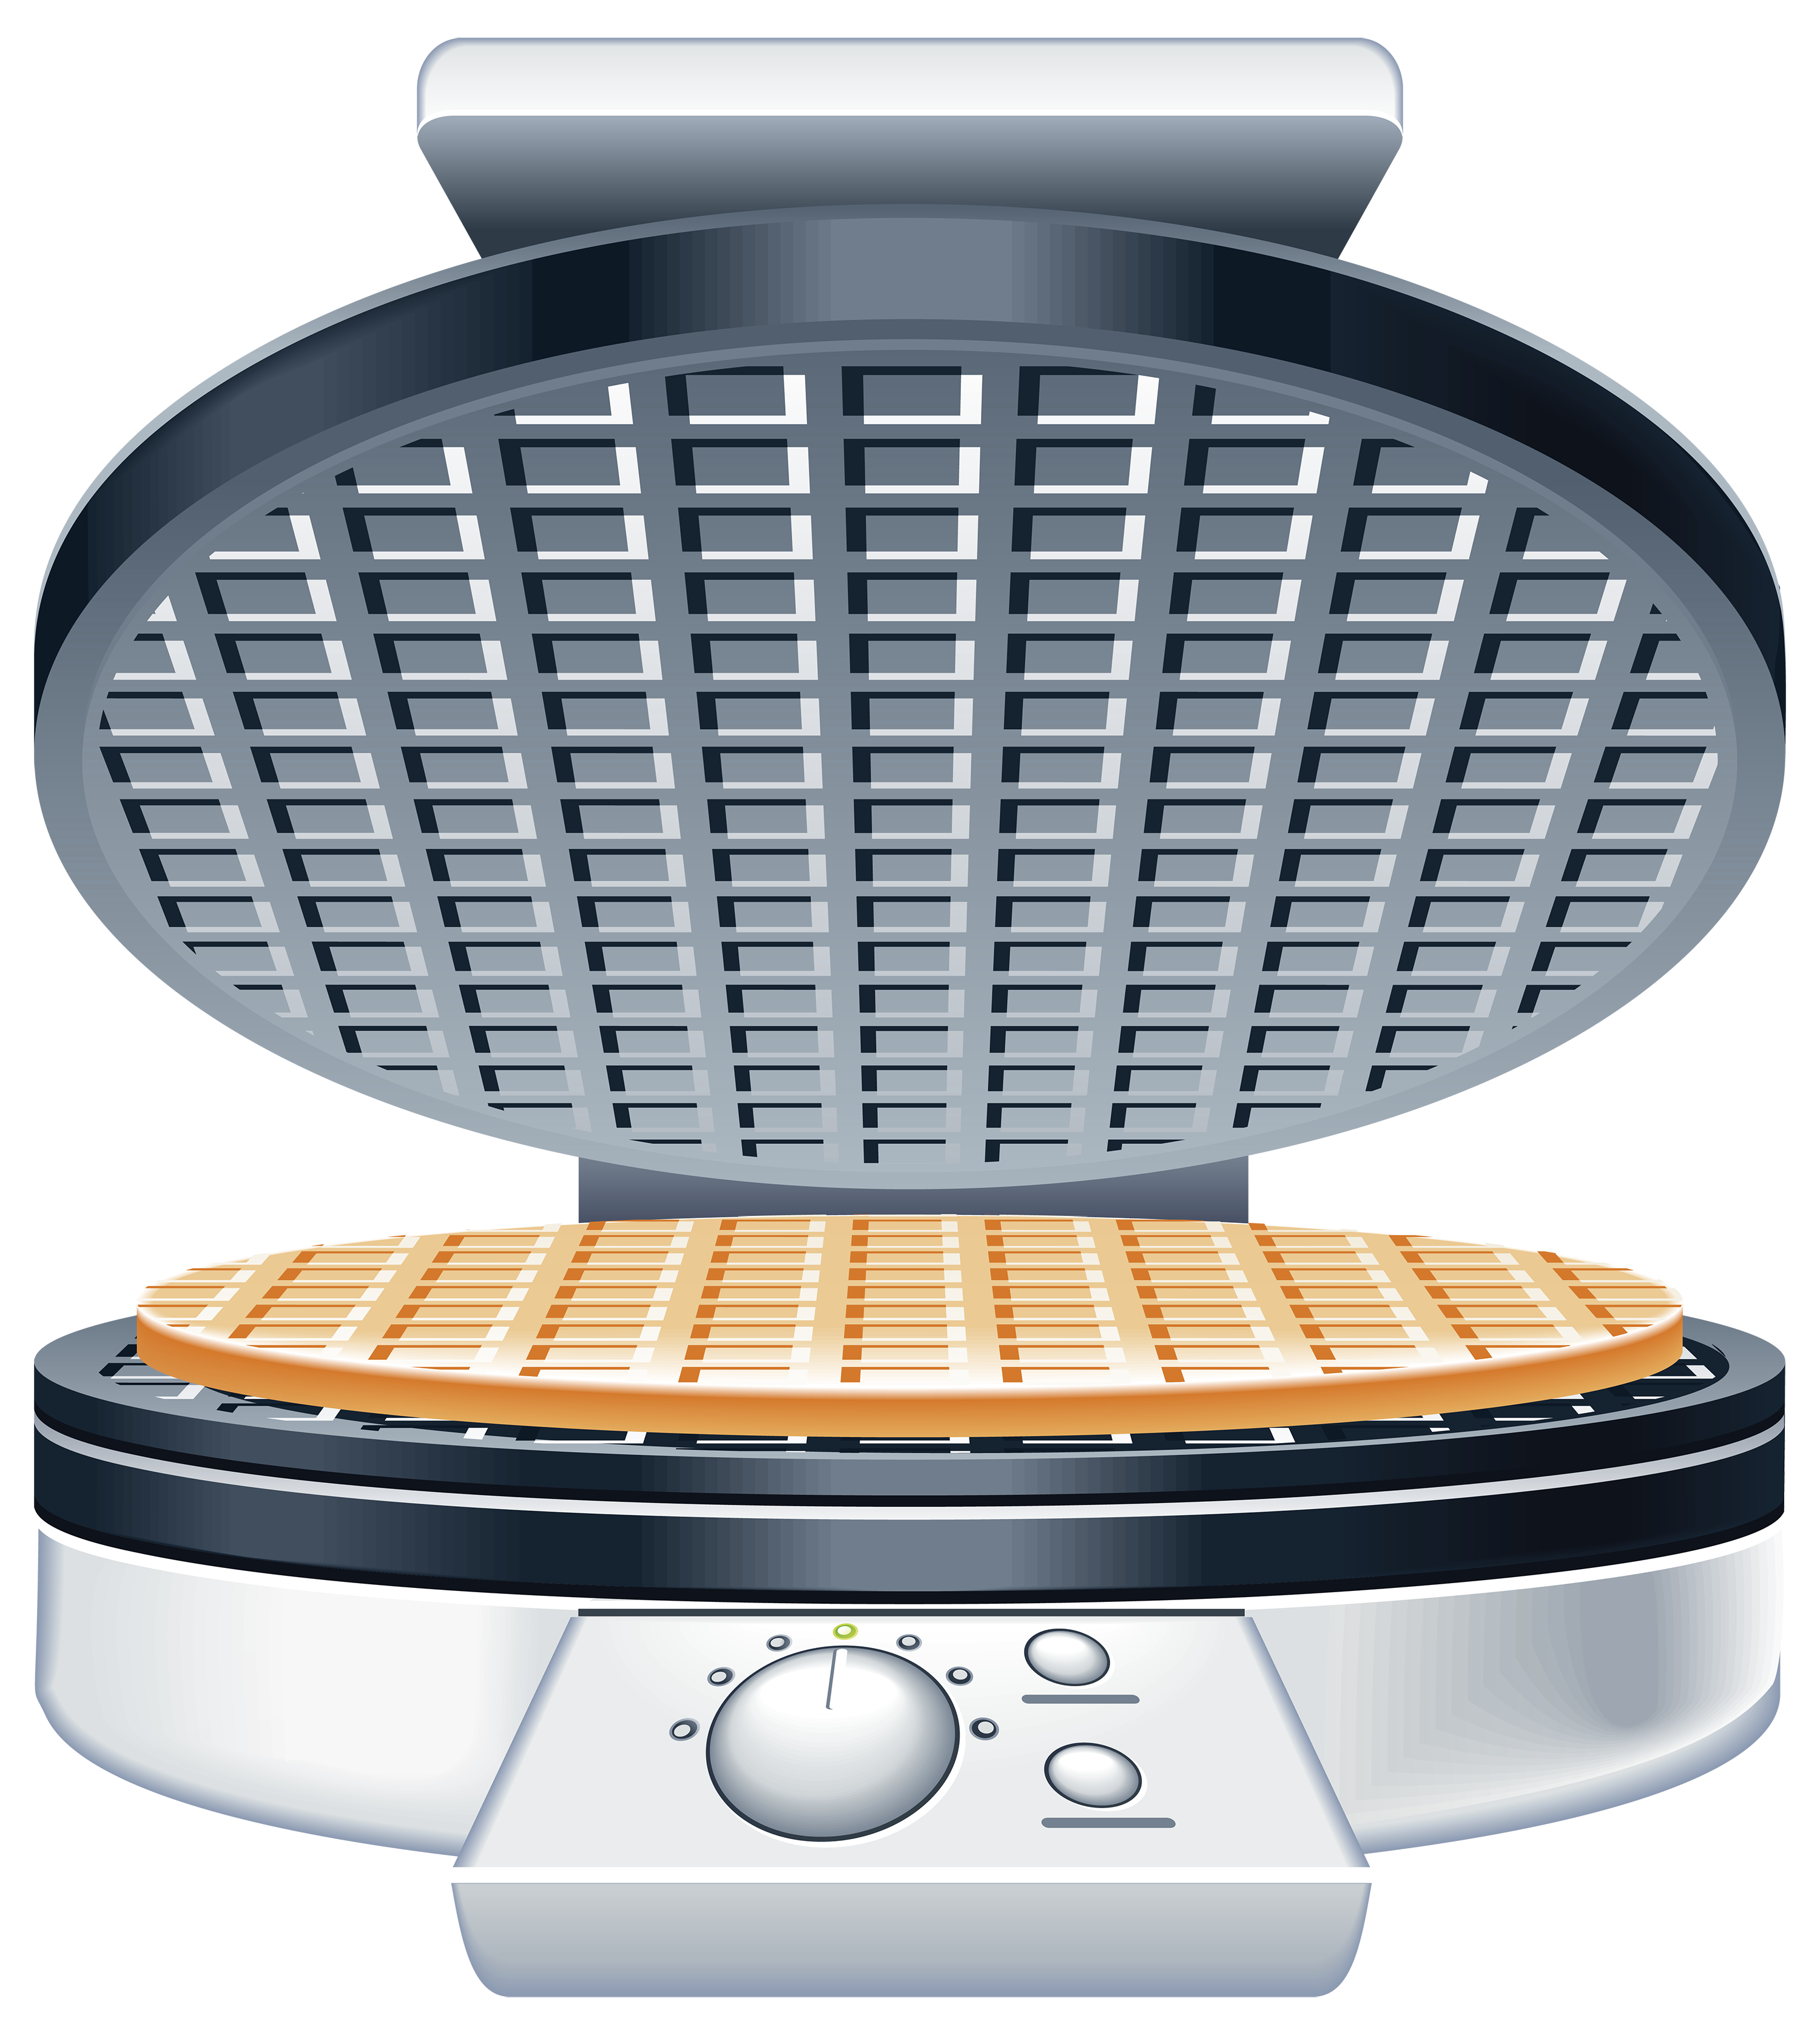 waffle maker png clipart best web clipart #29331